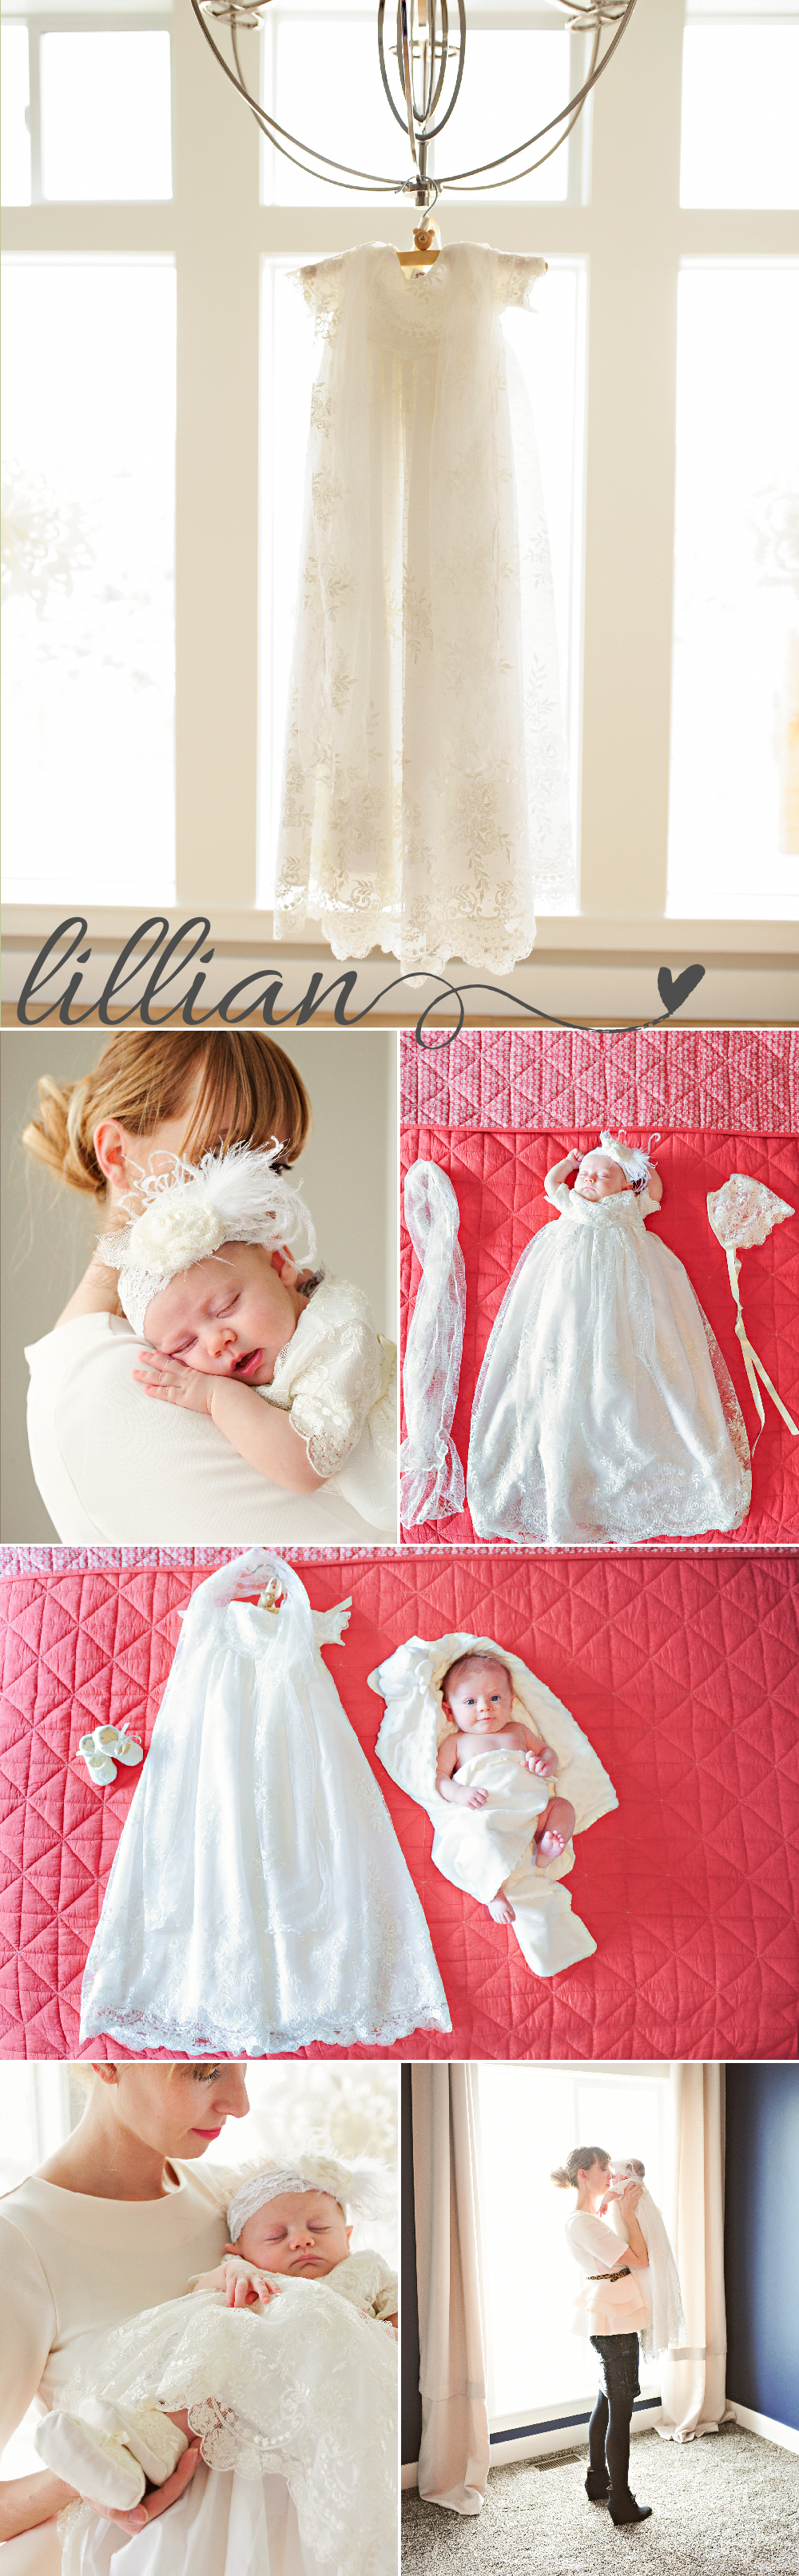 Heirloom Lace Christening Gown by One Small Child